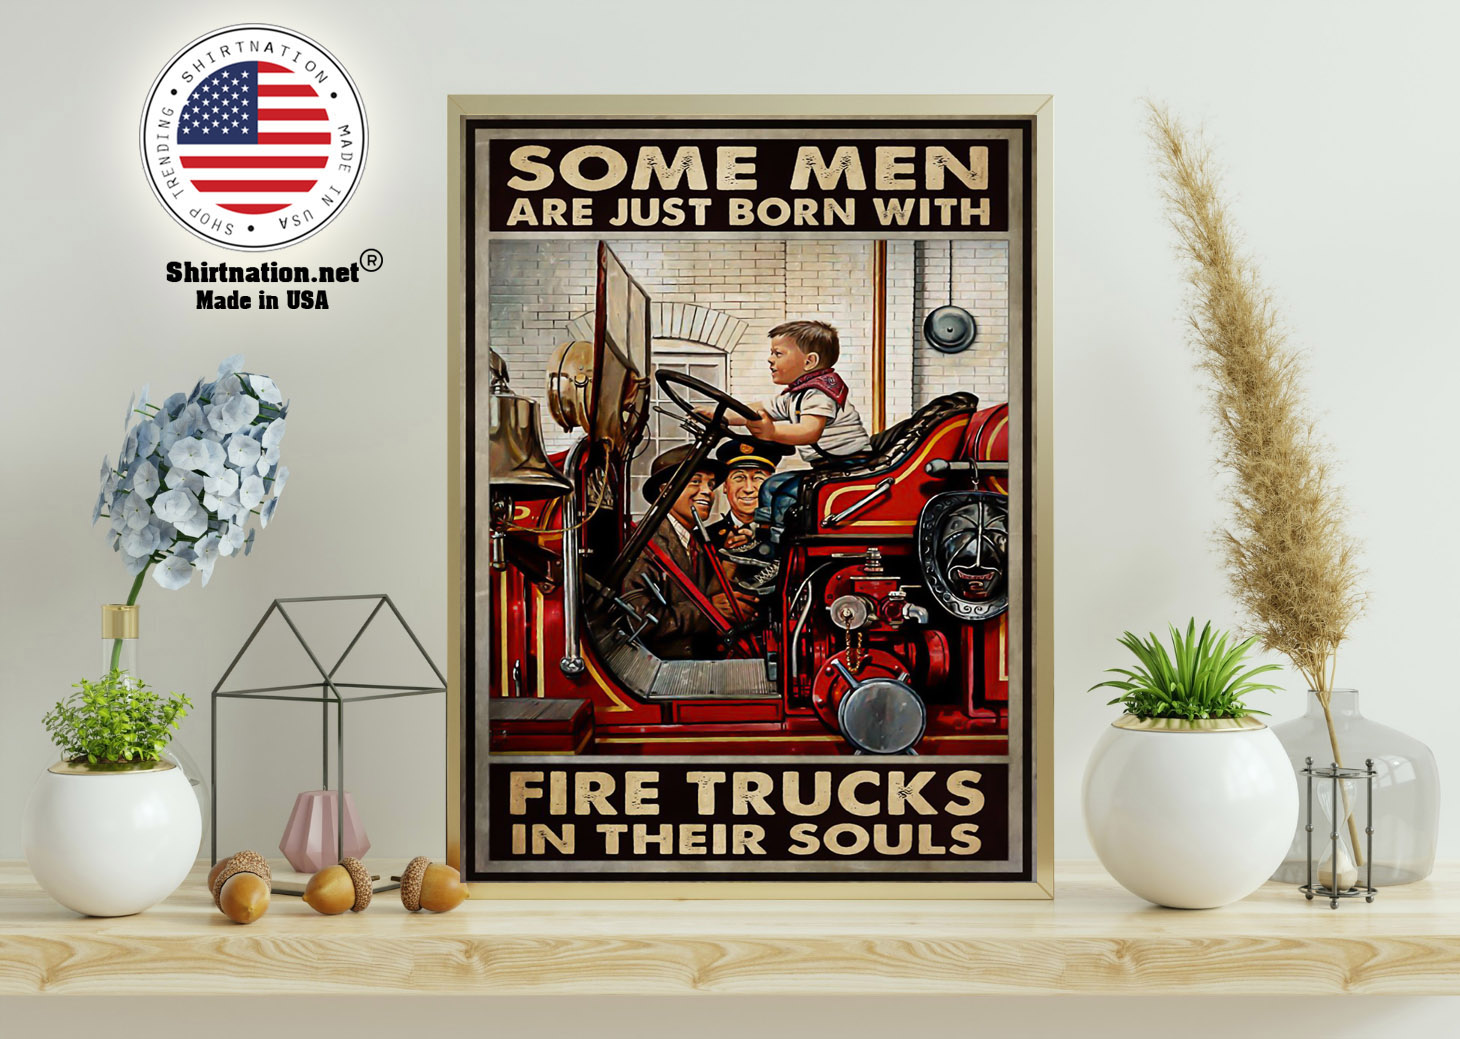 Some men are just born with fire trucks in their souls poster 11